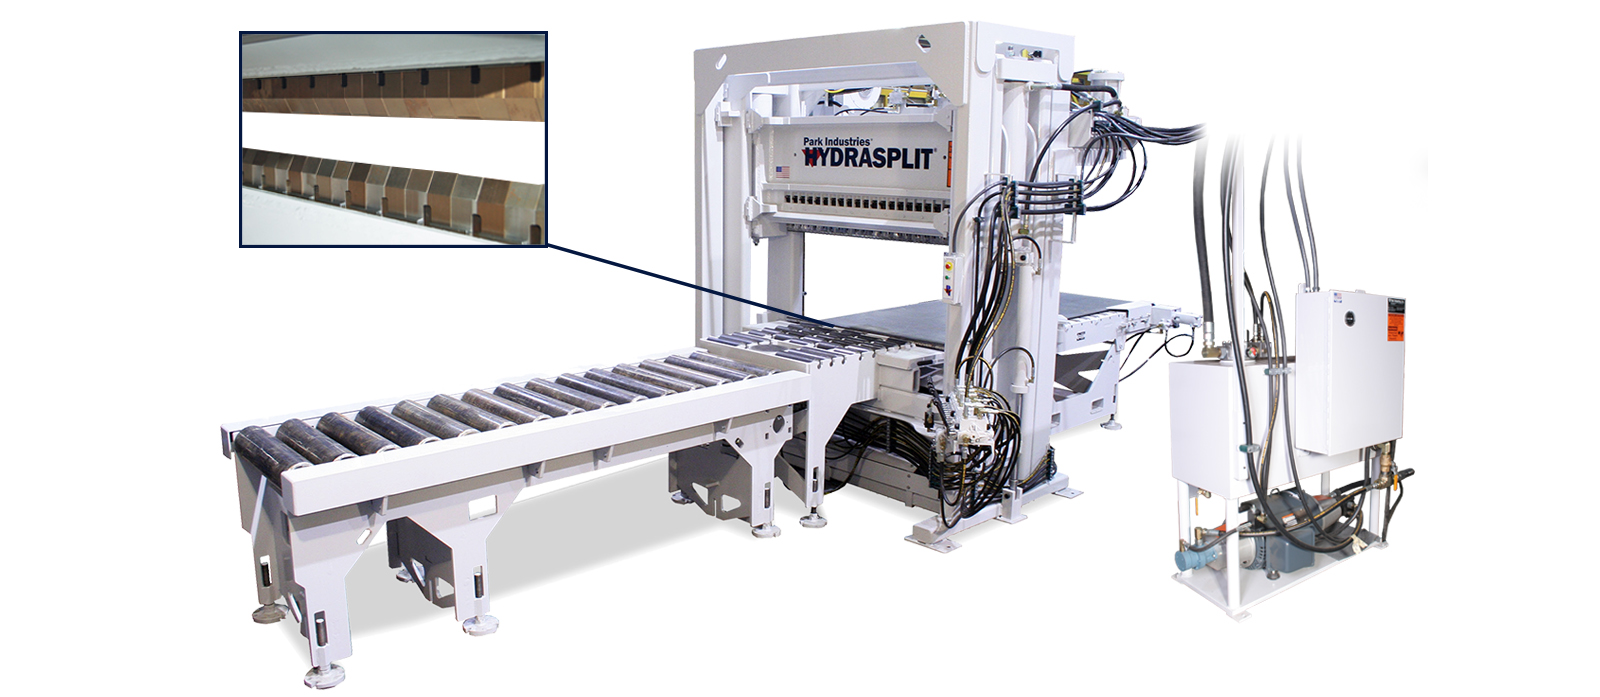 Hydrasplit-Stone-Splitter-Park-Industries-60-inch-wide-Features